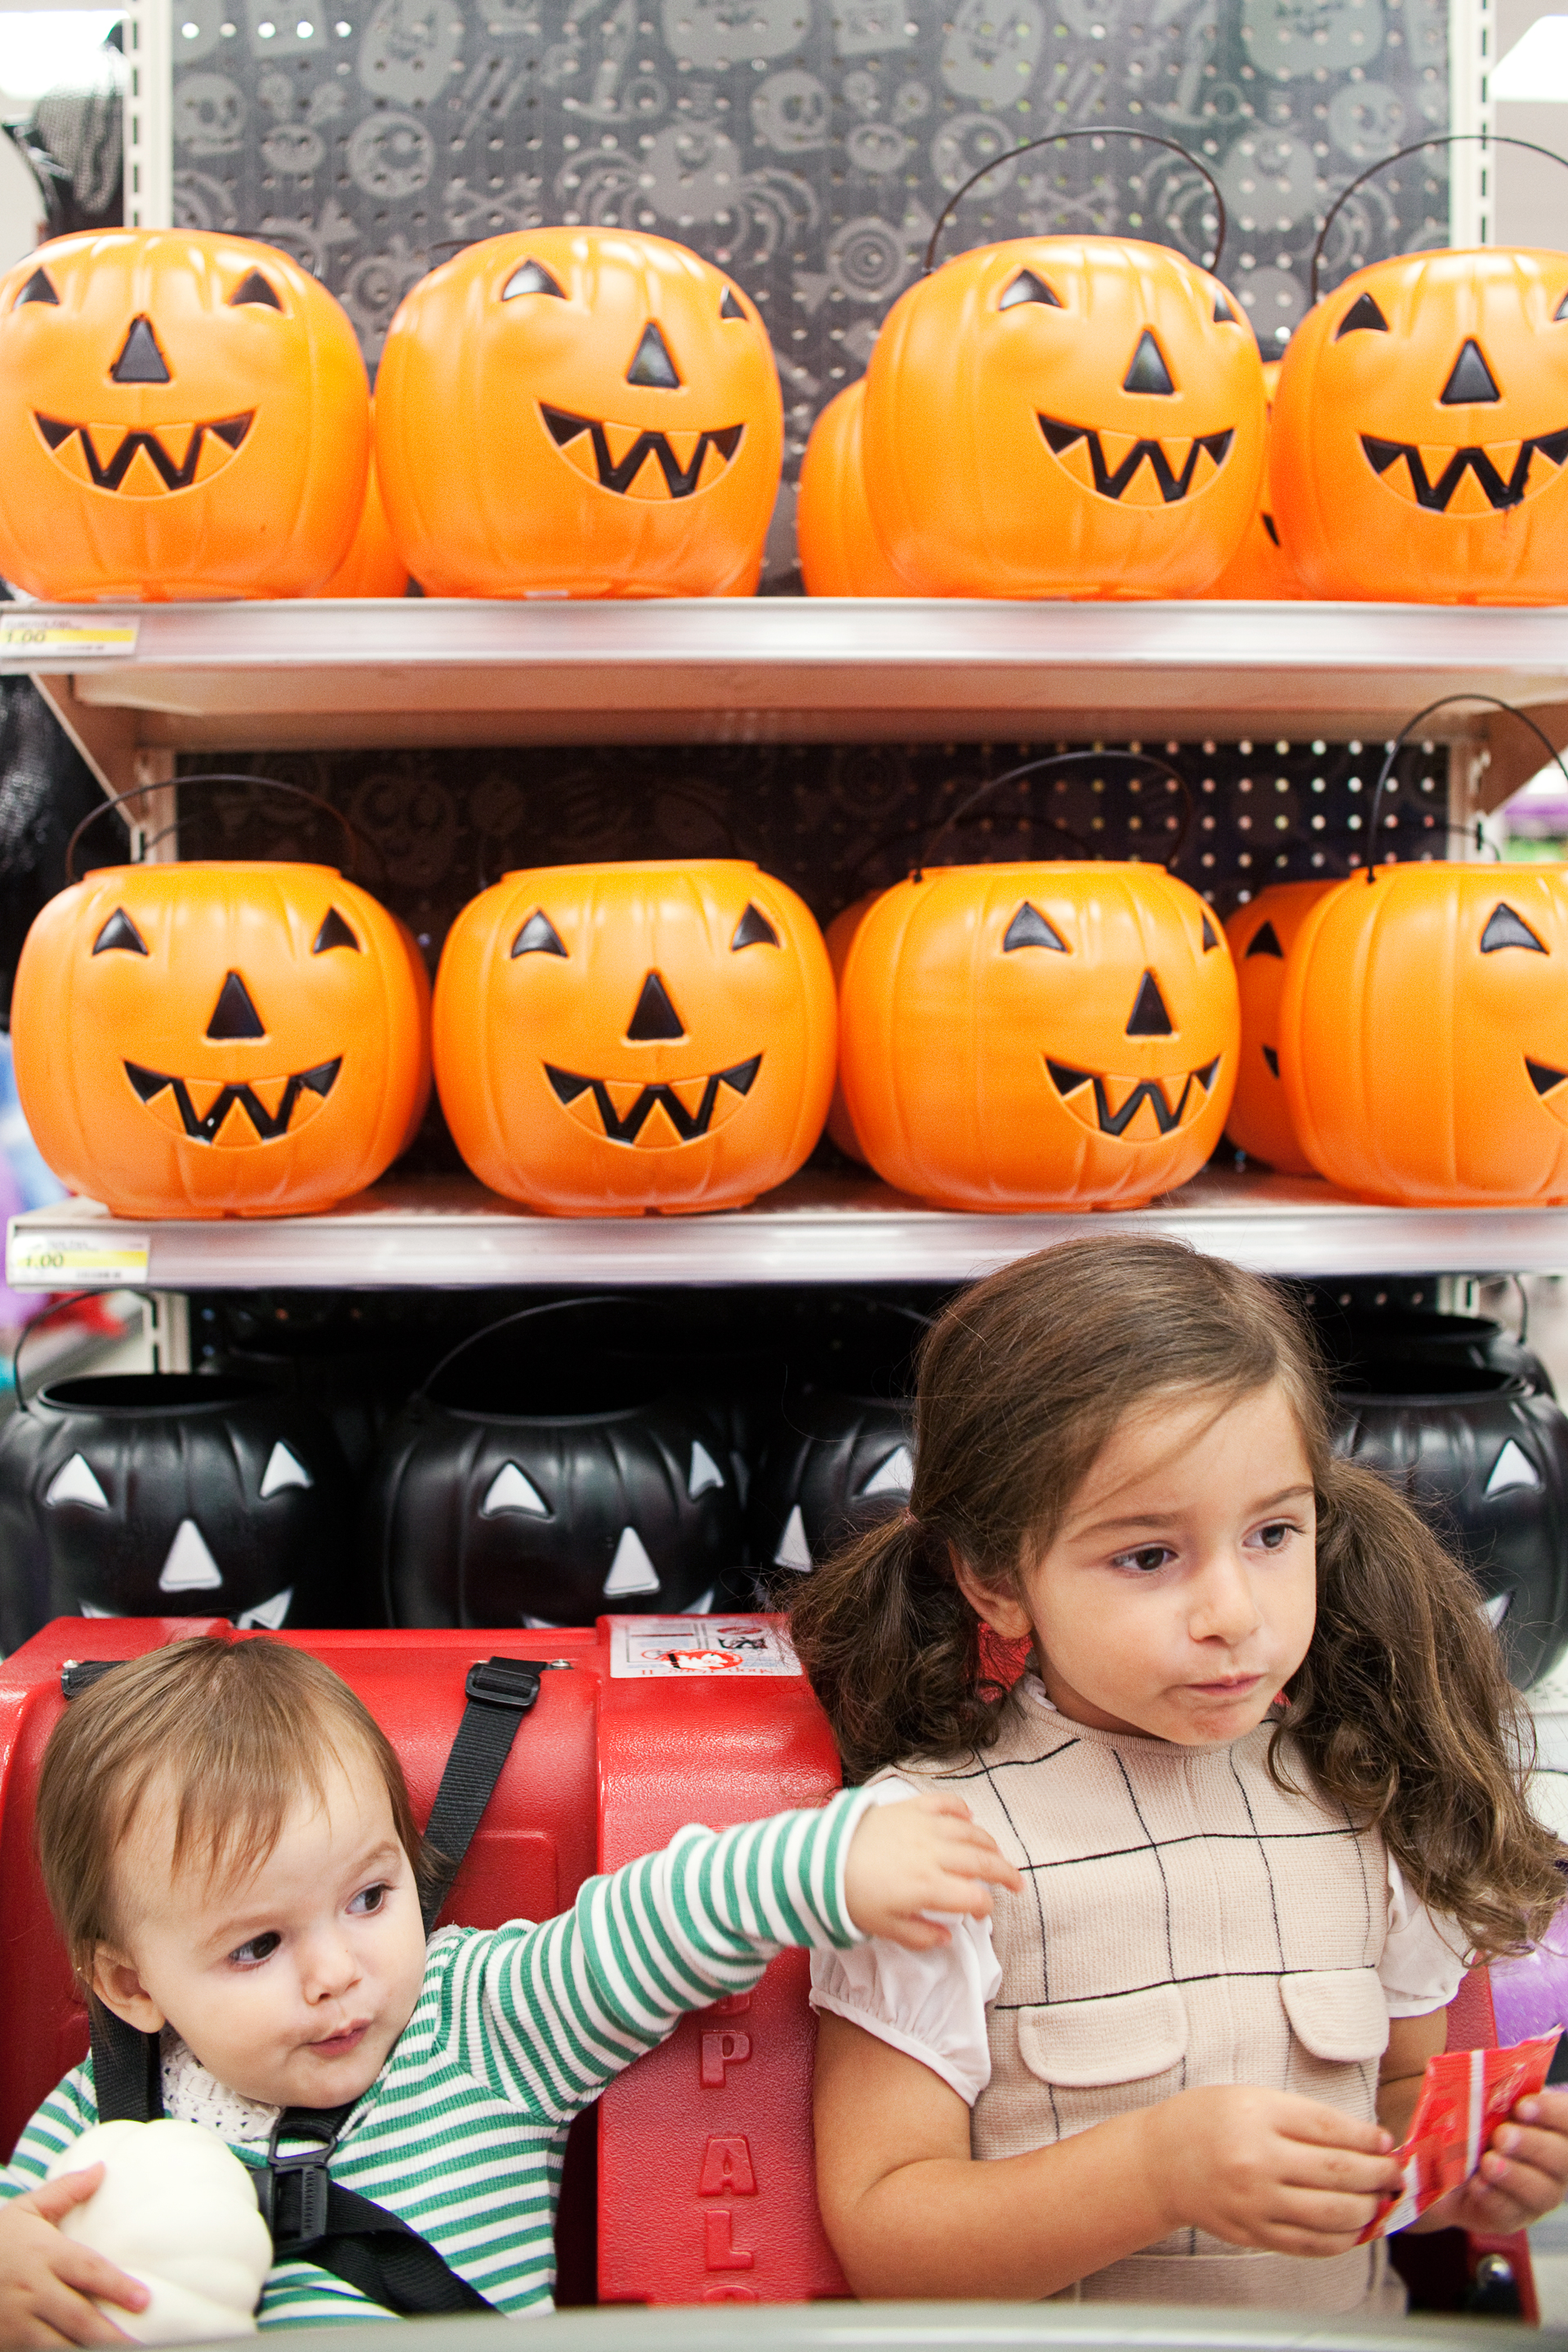 HorizTarget Halloween Decorations 2016on Organic Flavored Creamers at Target